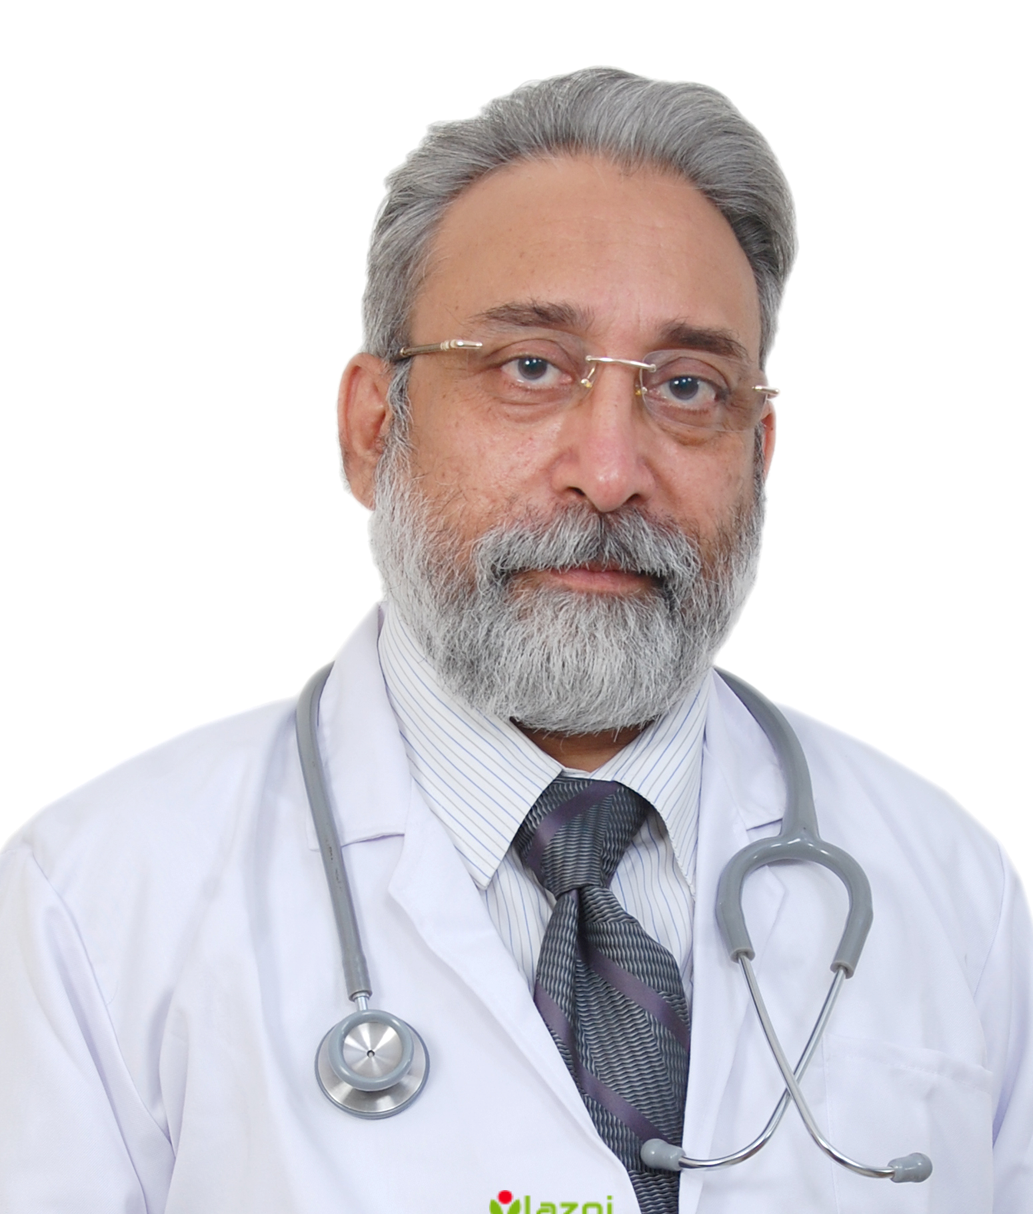 ENT (Ear Nose Throat) in Pitampura, ENT (Ear Nose Throat) in North West Delhi, ENT (Ear Nose Throat) in Delhi, ENT doctor in Pitampura,  ENT specialist in Pitampura,  Ear specialist doctor in Pitampura